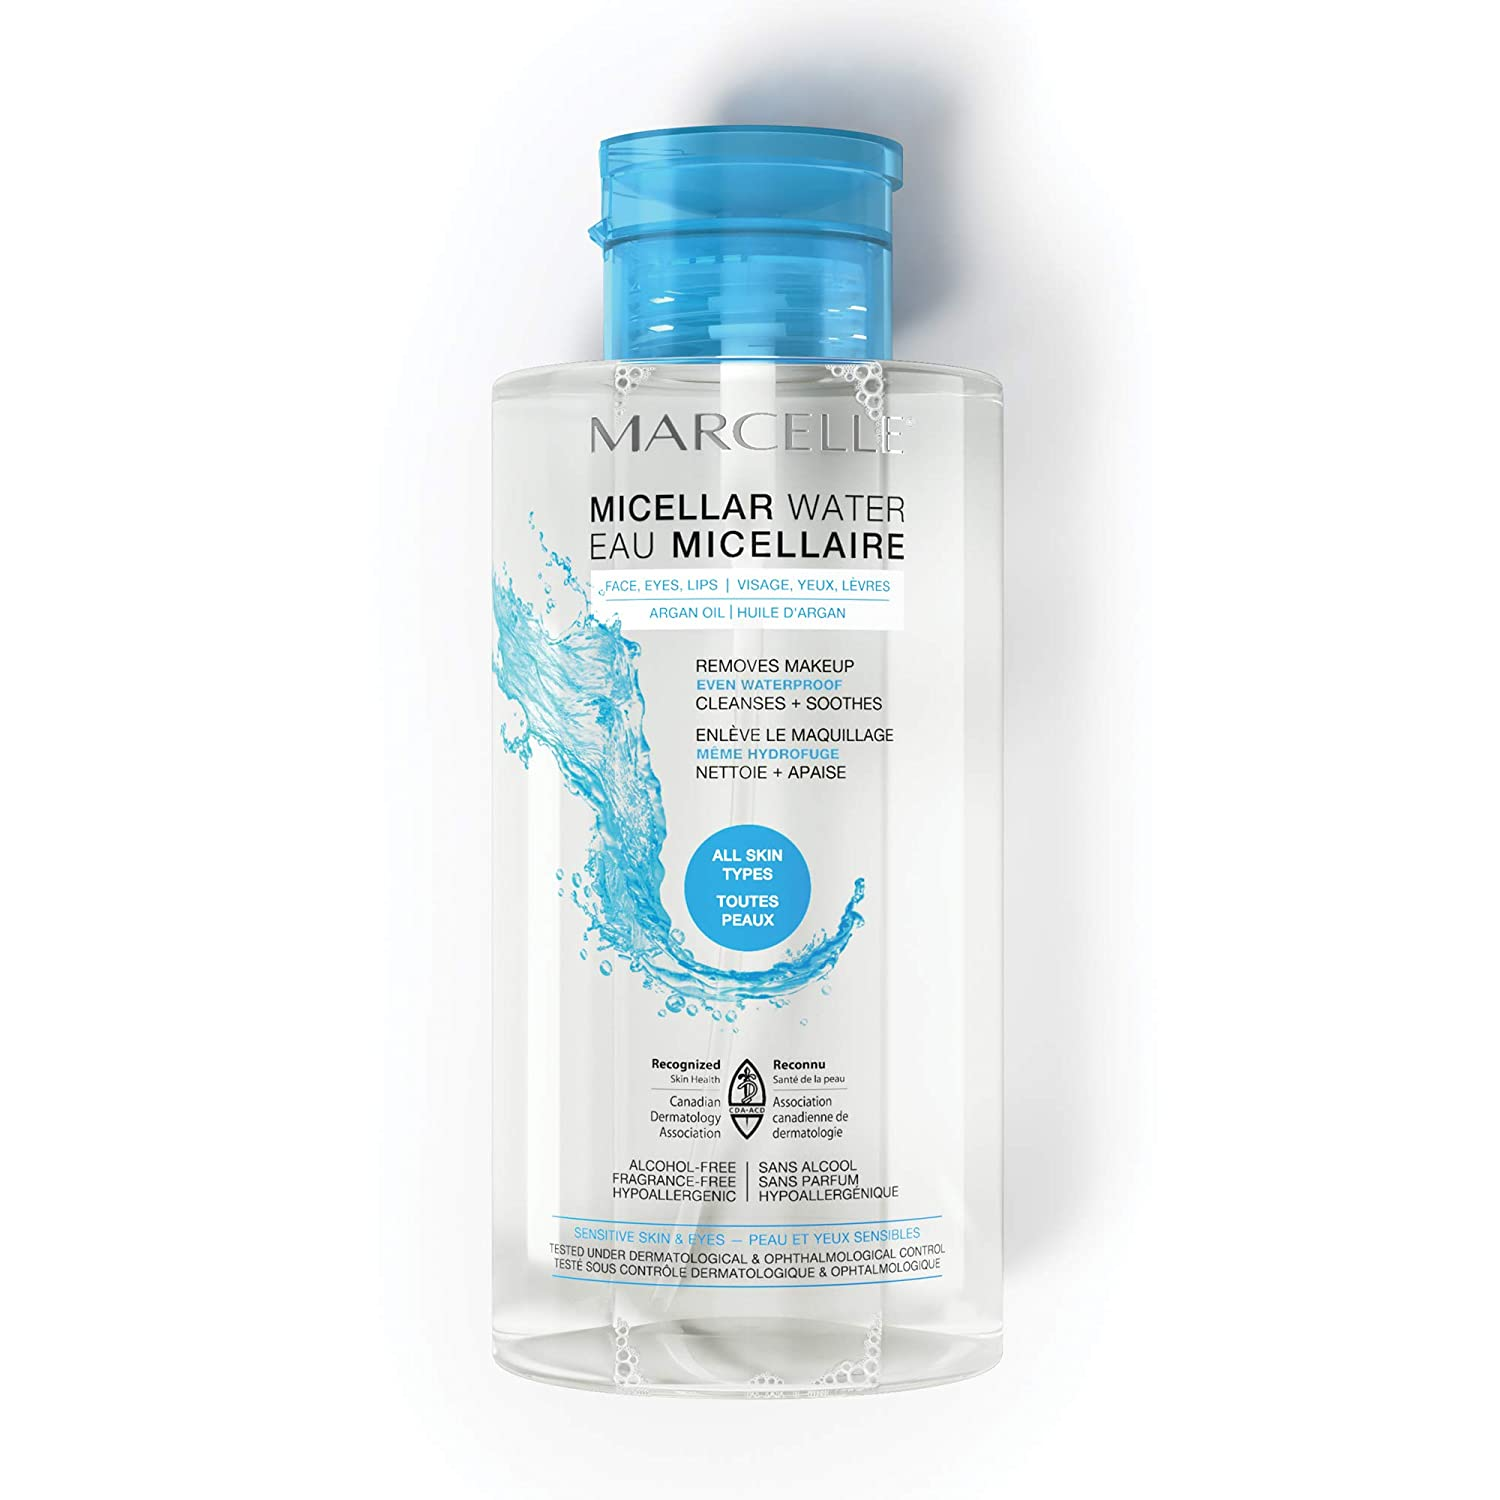 Marcelle Micellar Water - Hypoallergenic Tucson Mall supreme Fragran Waterproof and